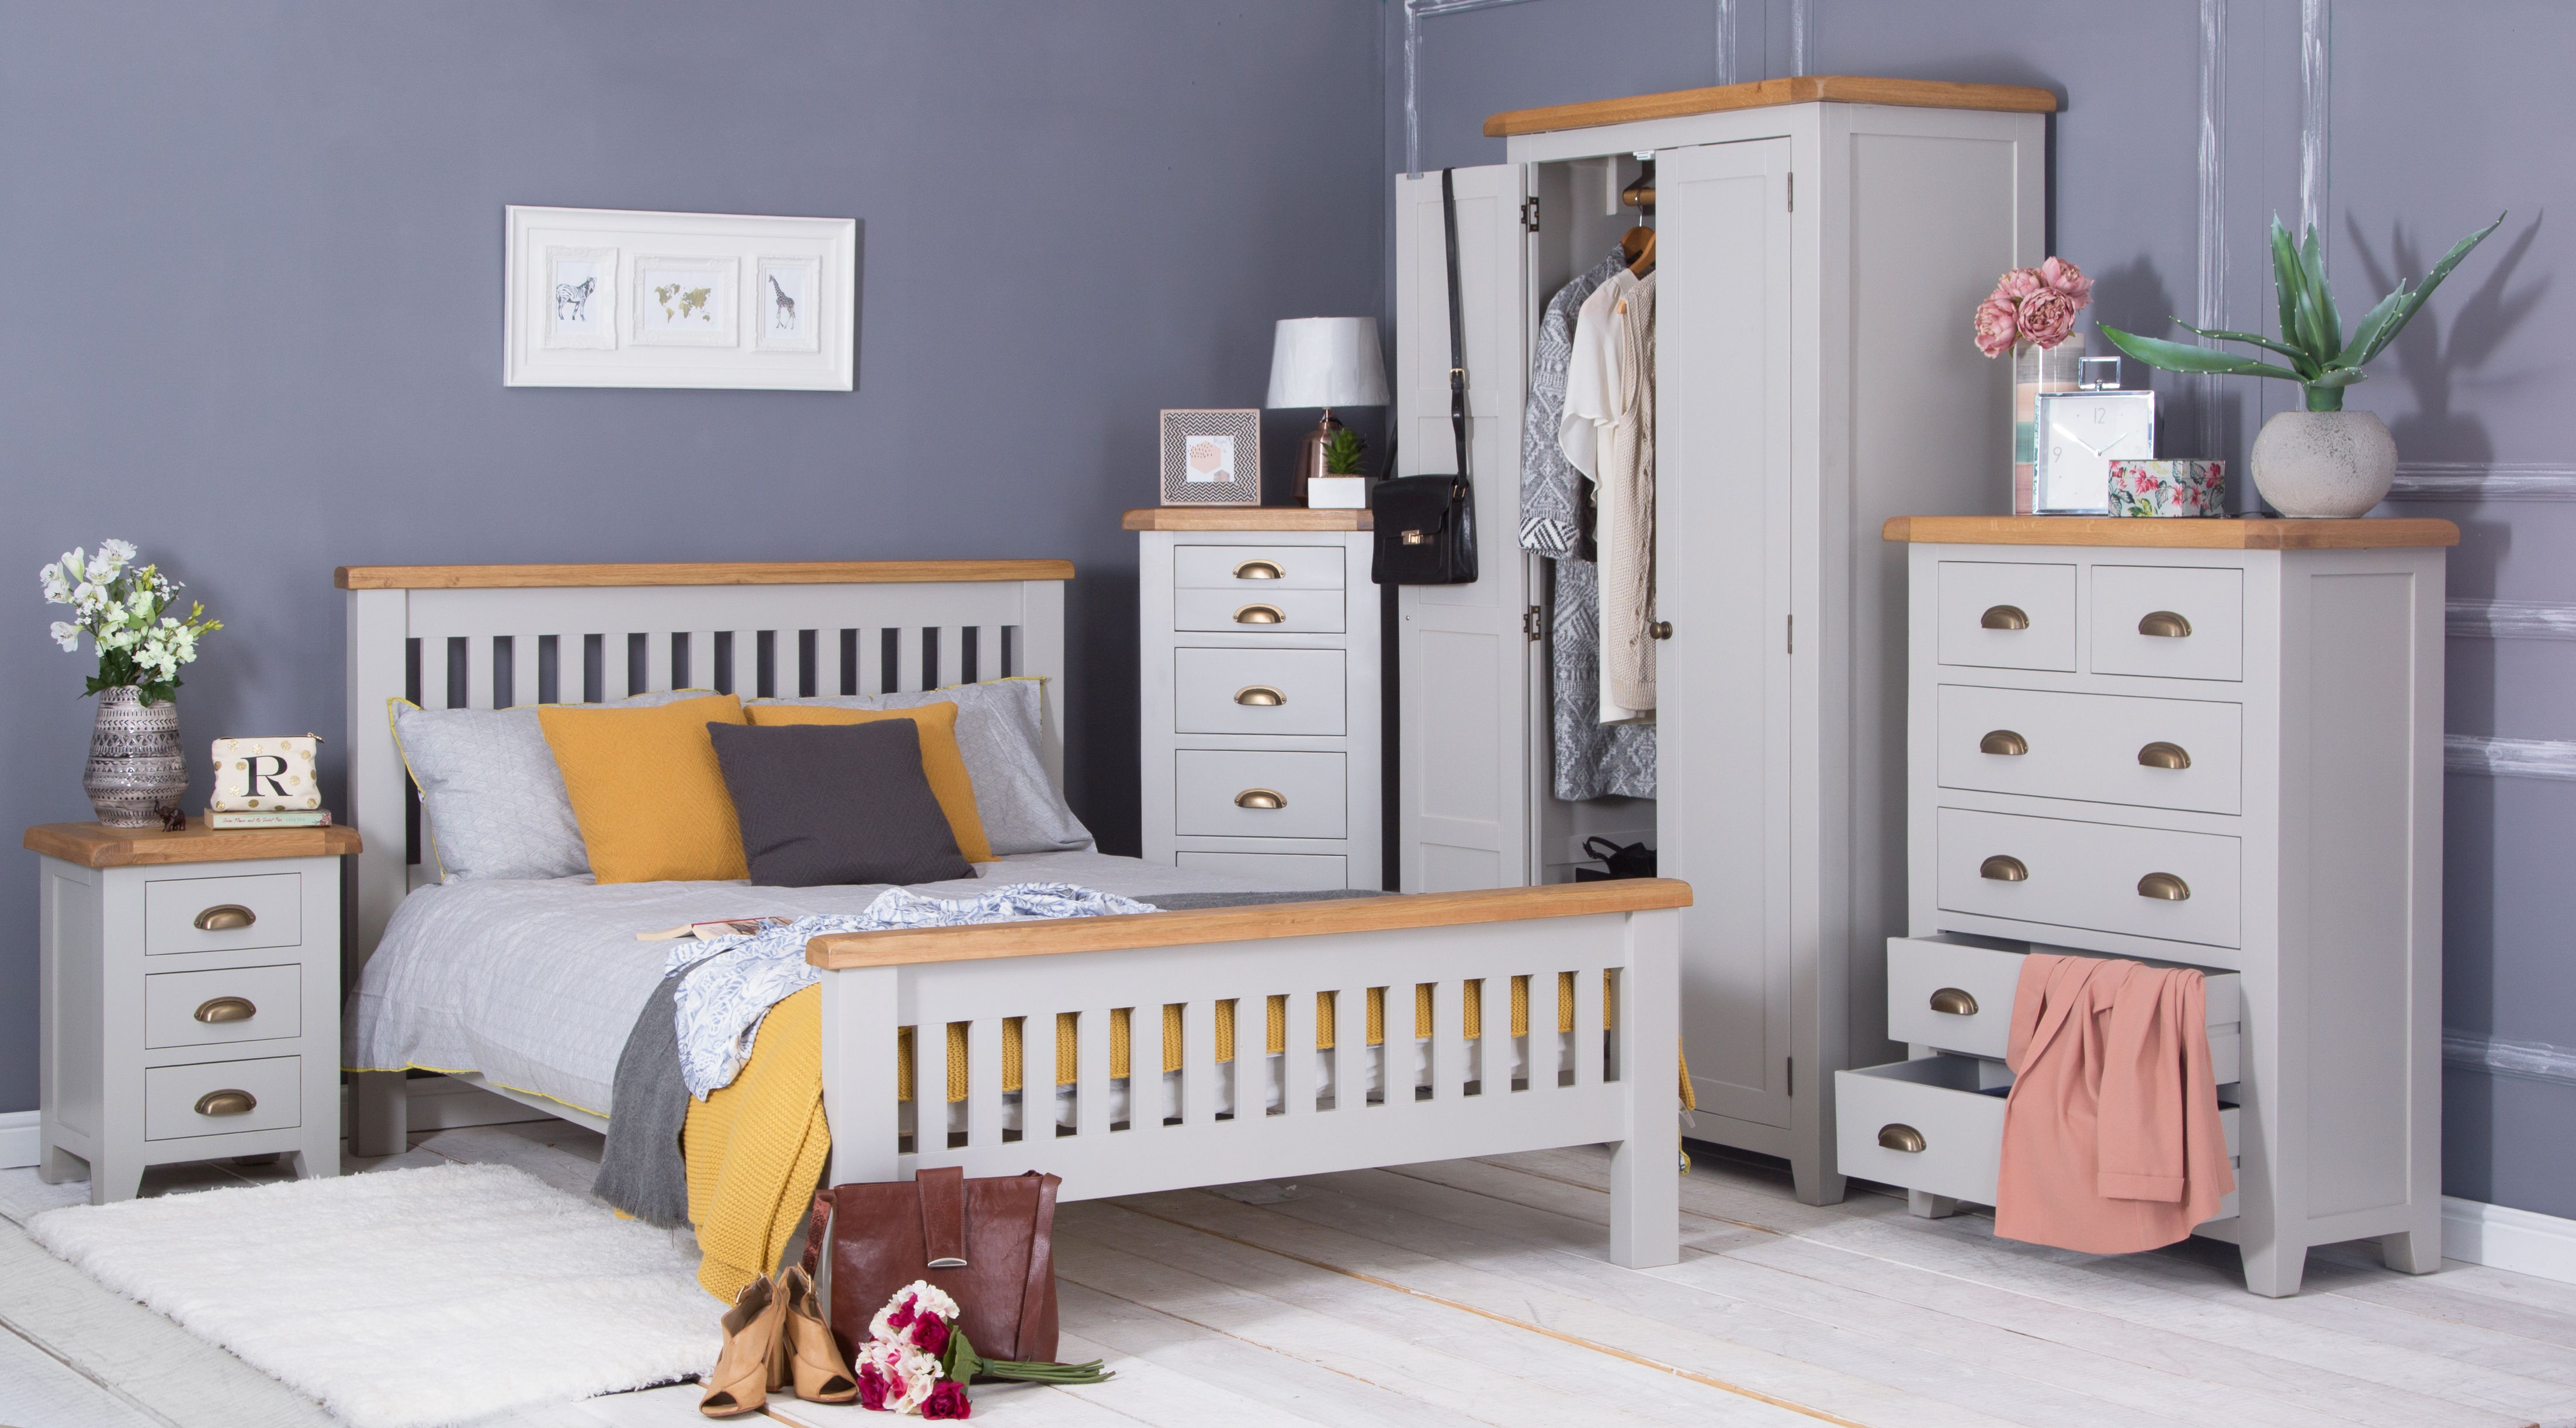 Chilternoakfurniture A Range That S Certain To Take The Furniture World By Storm This Year Hampshire Gre Grey Room Decor Bedroom Furniture Makeover Furniture